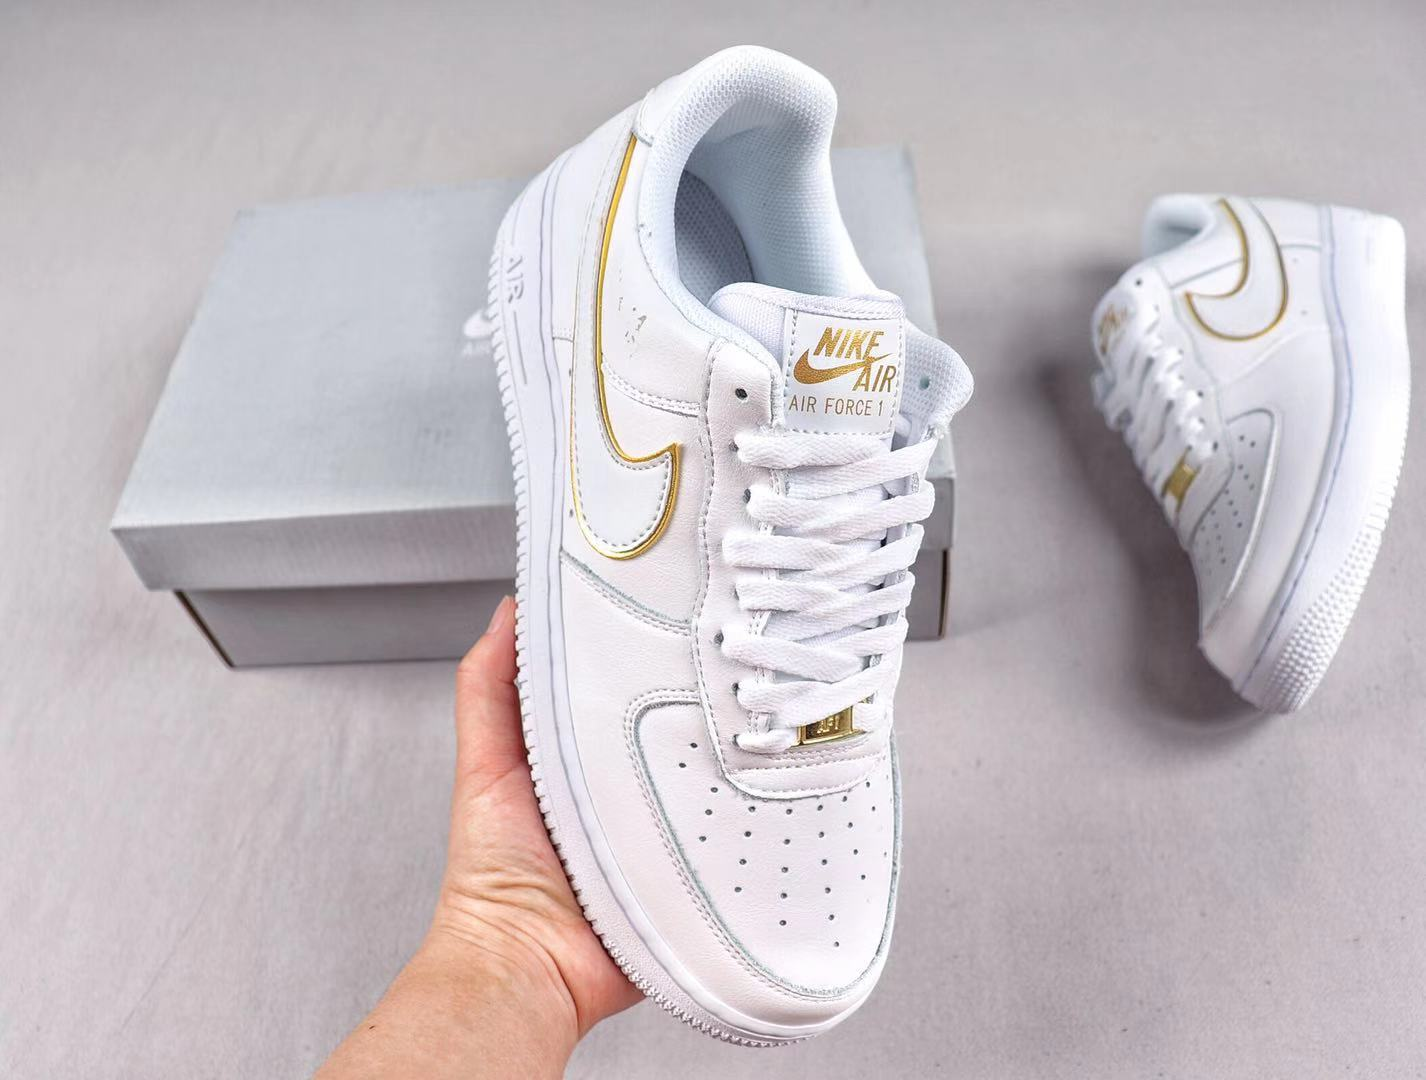 Popular Nike Air Force 1 Low White/Gold Sneakers In Stock AO2132-101